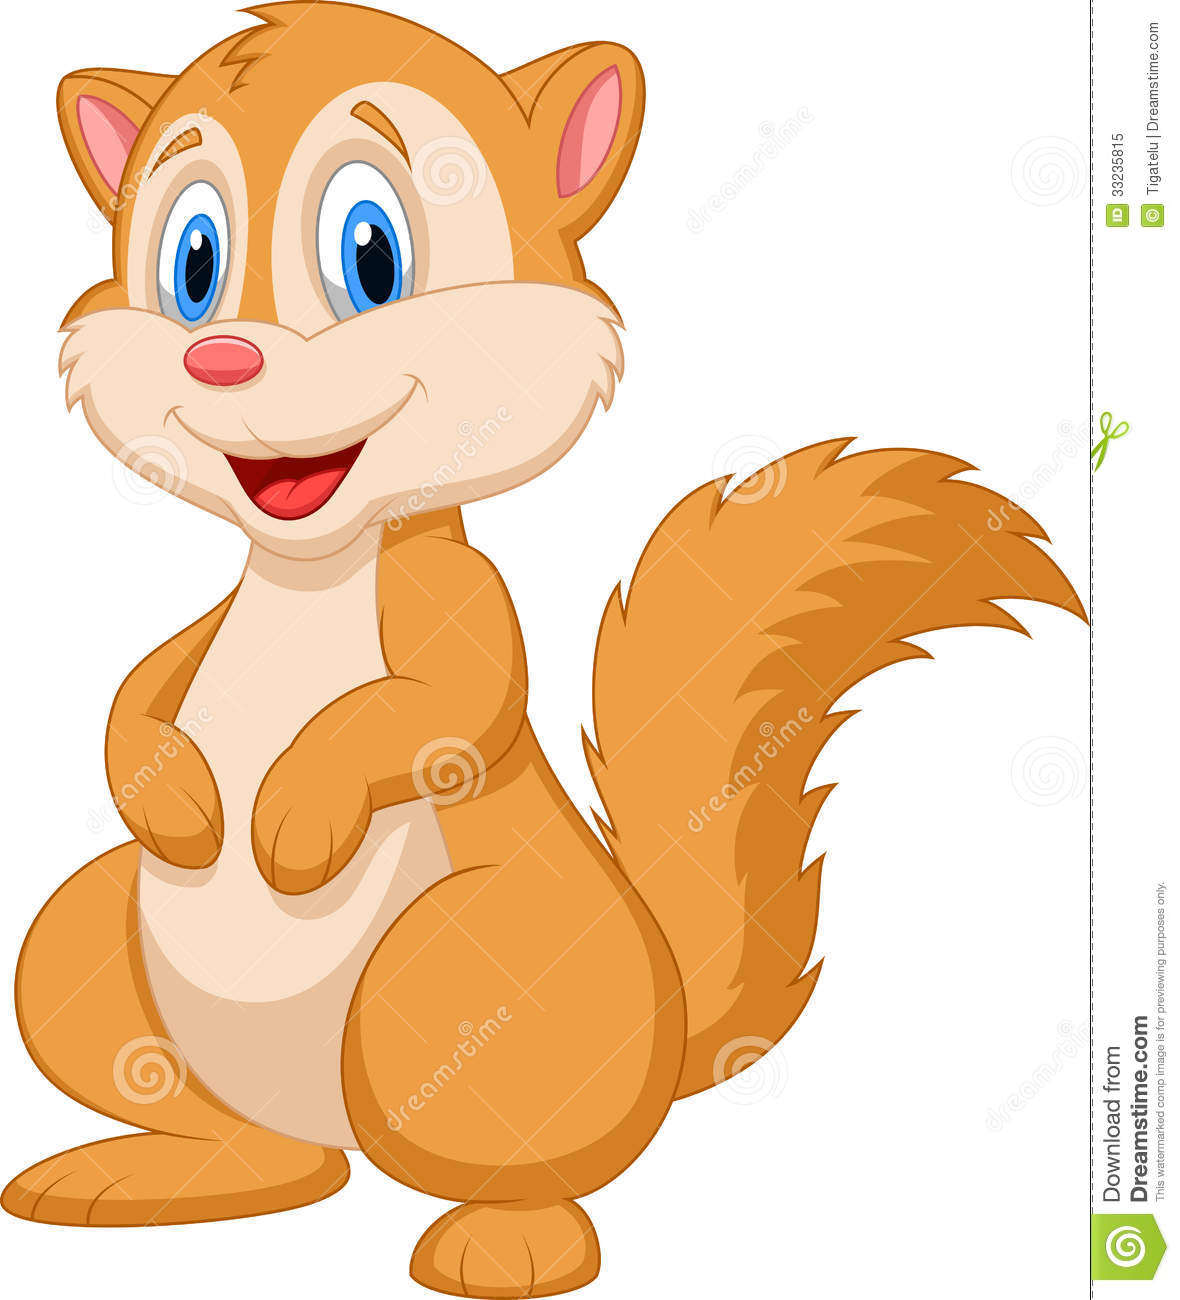 Cute Squirrel Cartoon Royalty Free Stock Photo   Image  33235815